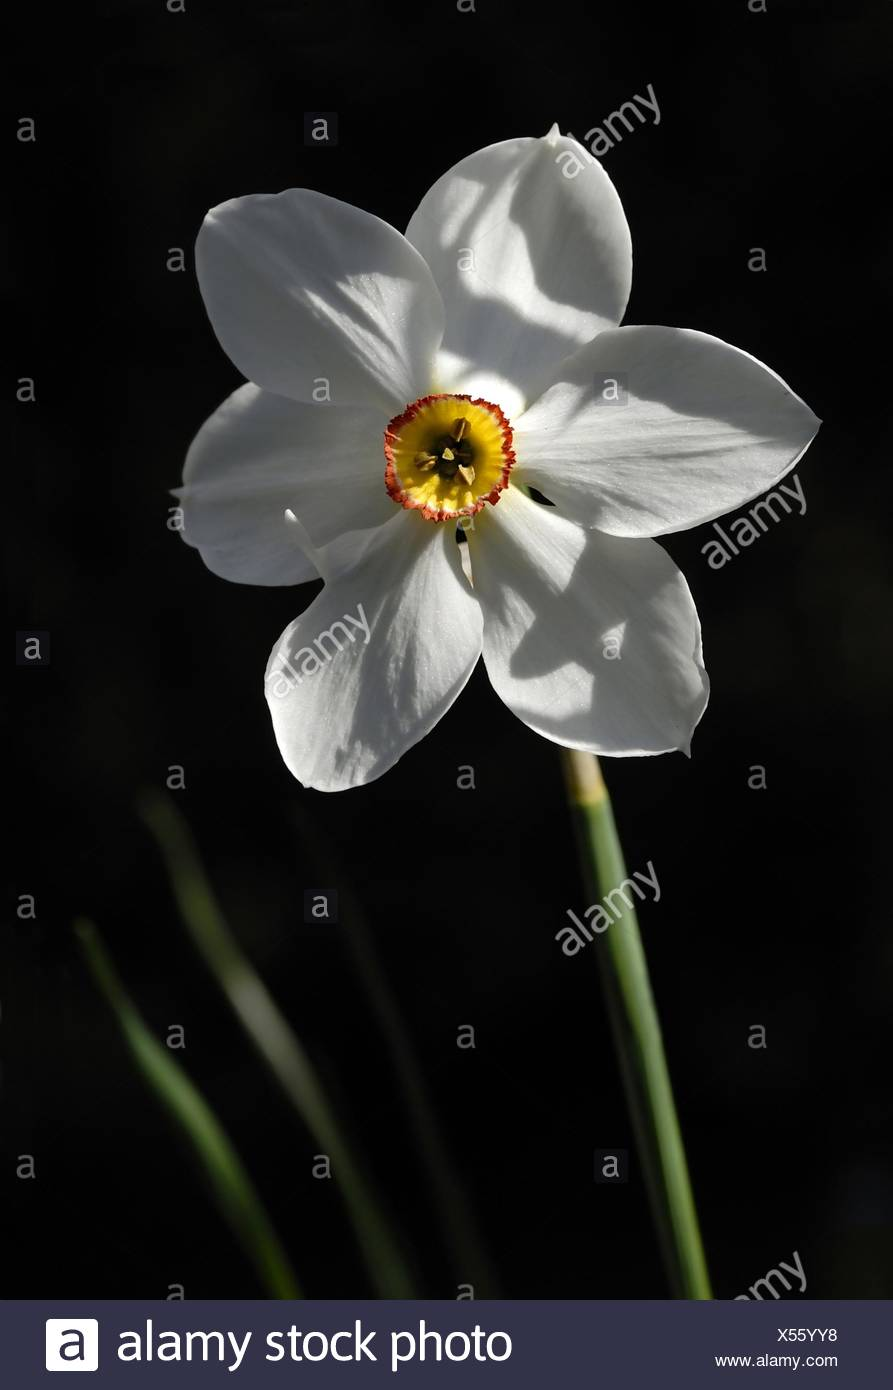 Poets narcissus - Stock Image